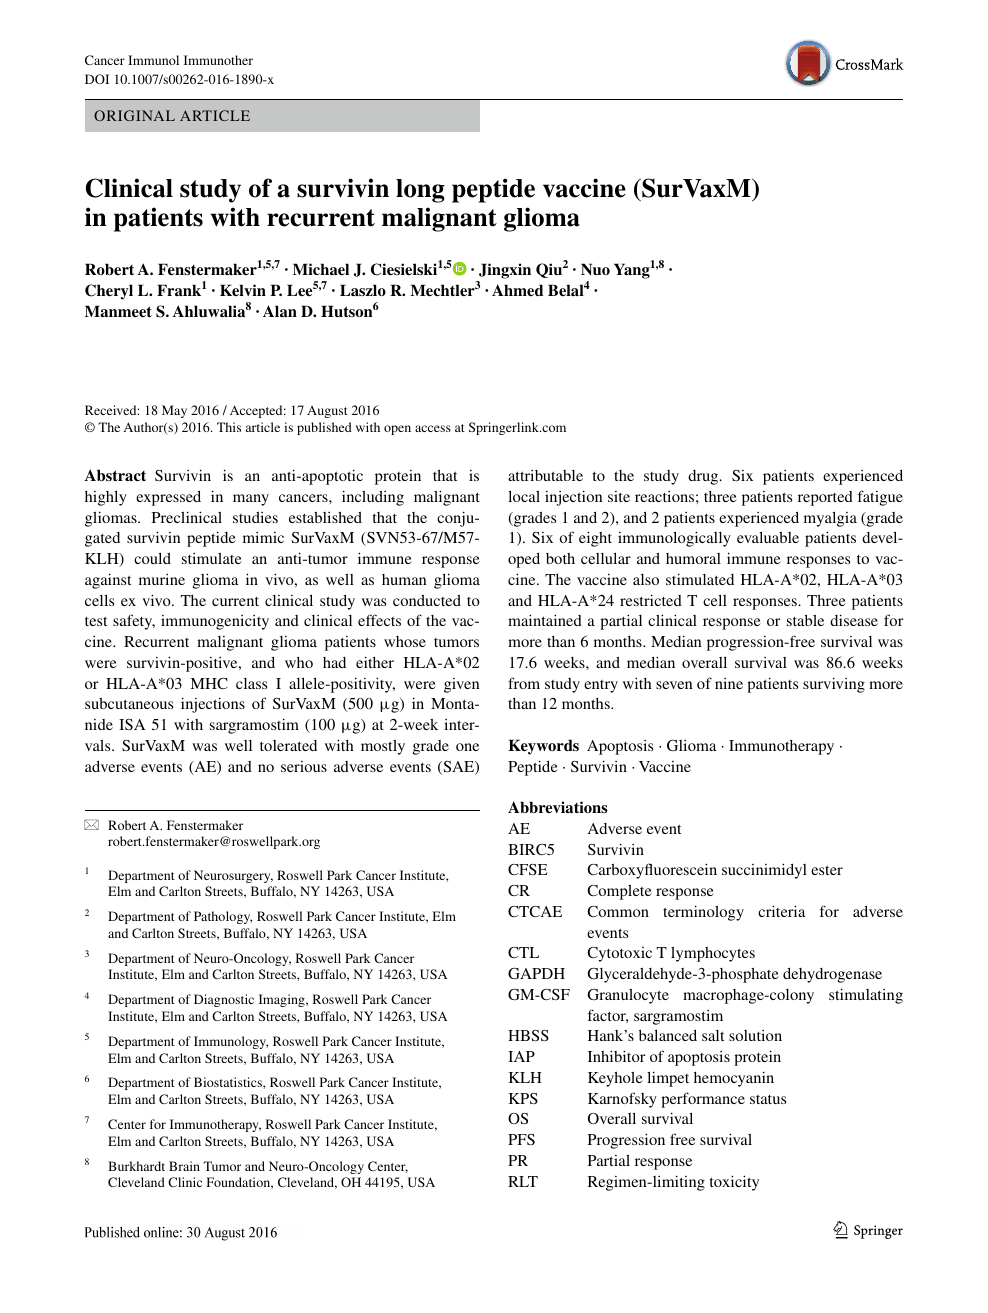 Clinical study of a survivin long peptide vaccine (SurVaxM) in